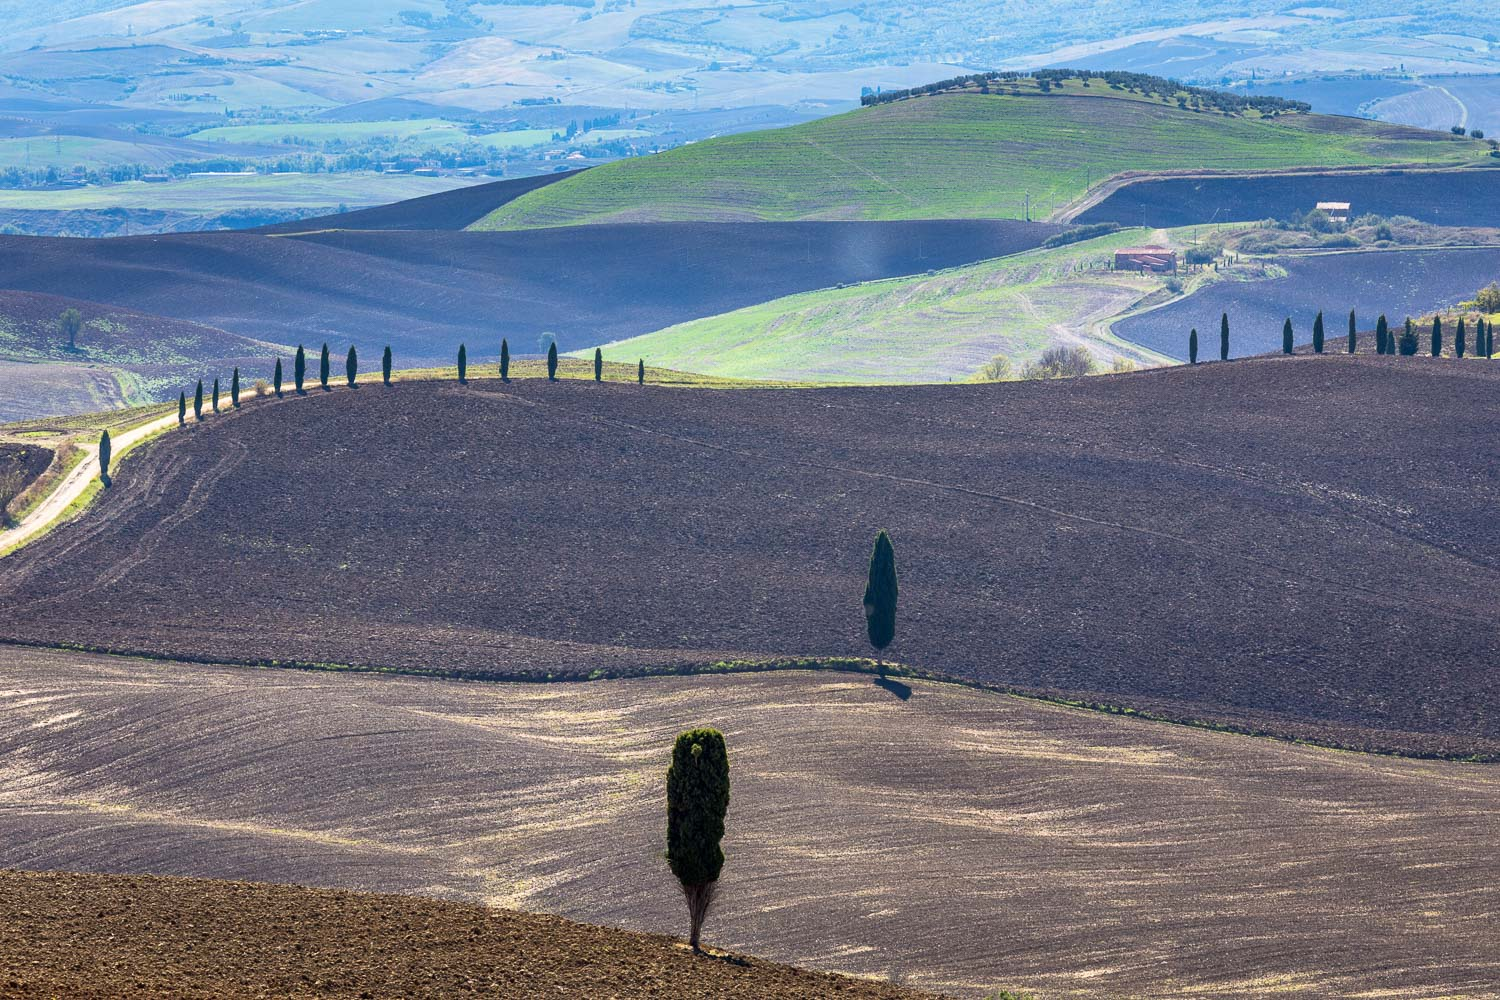 San Quirico to Pienza walk